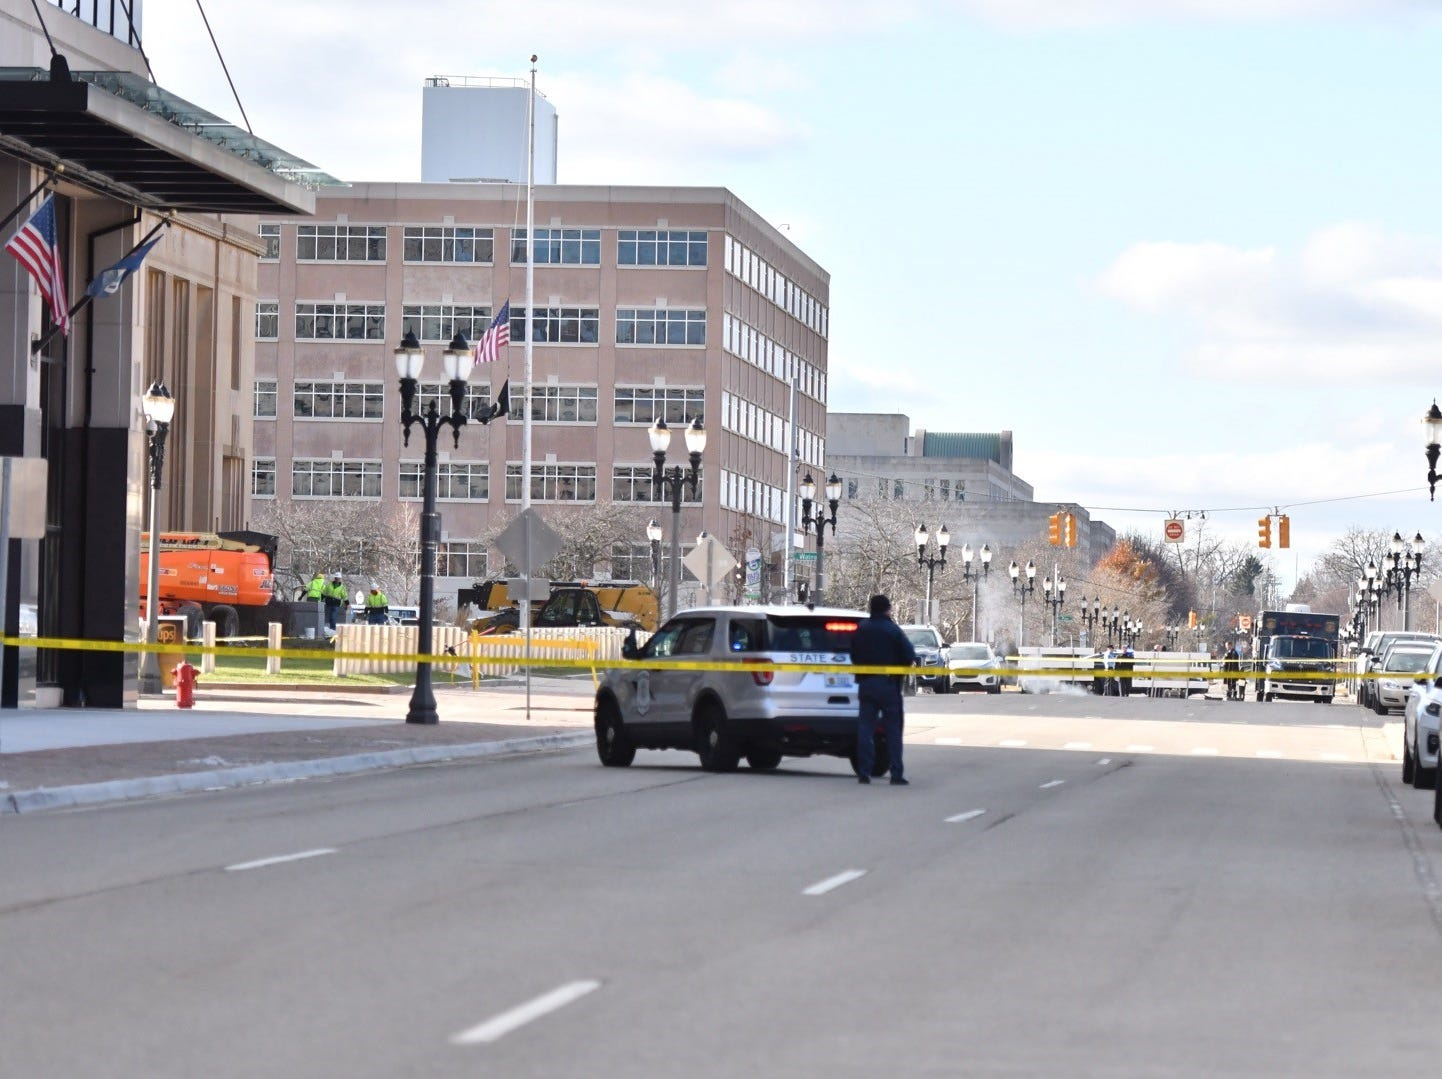 Lansing police and Michigan State Police block streets as they investigate a suspicious package near a postal pick-up box near the U.S. Post Office on Townsend and Allegan.